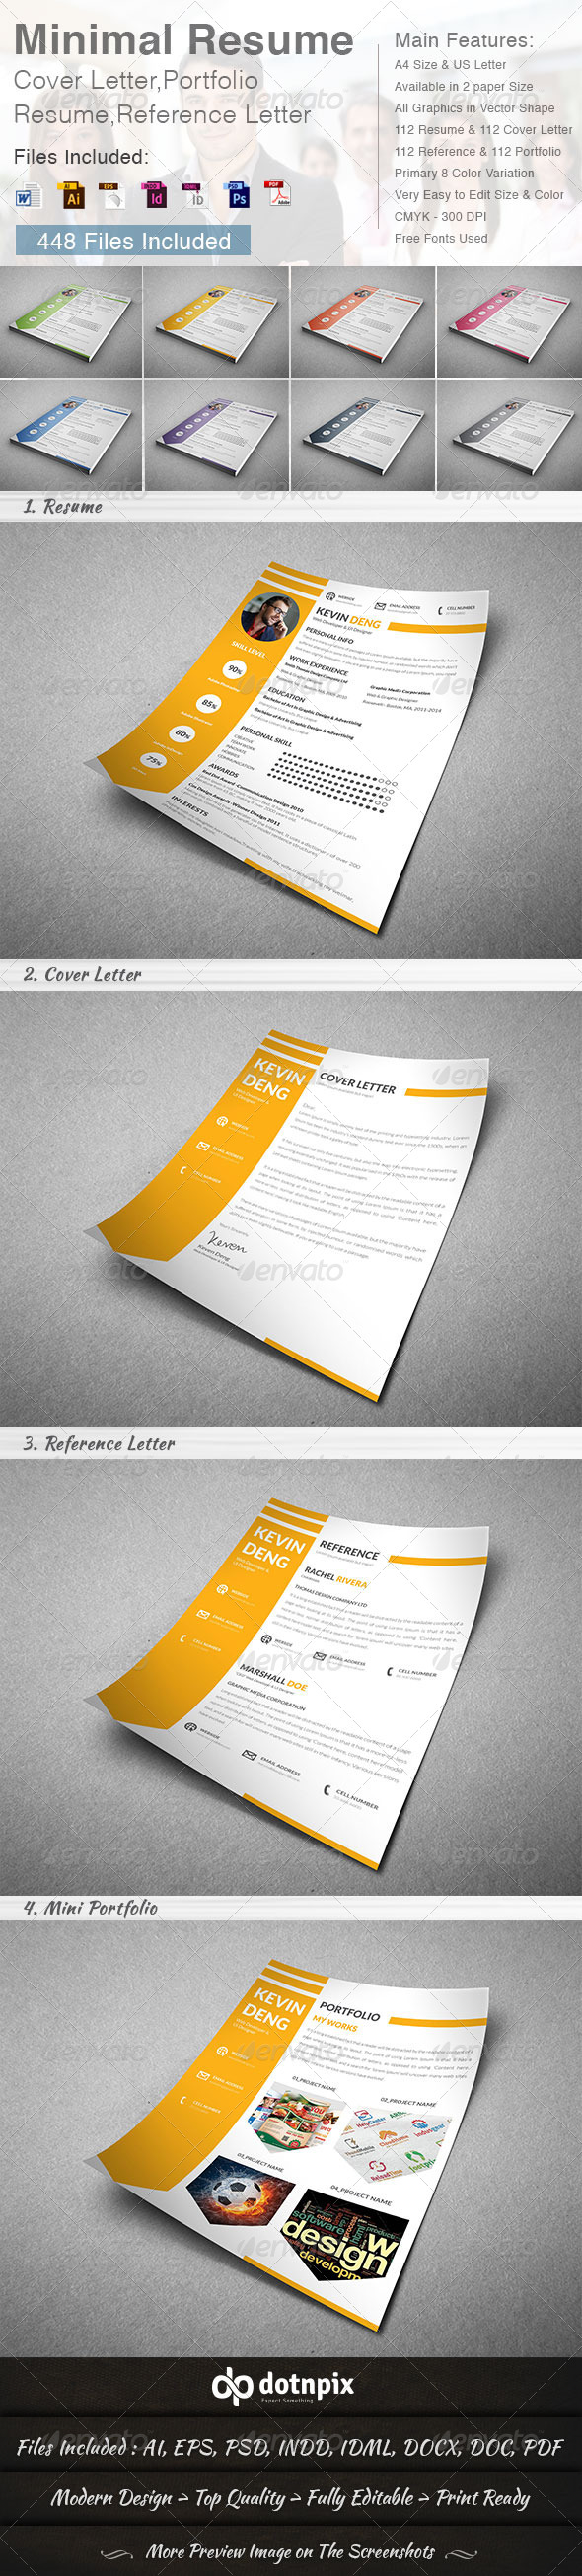 GraphicRiver Minimal Resume Cover Letter 4 in 1 8617520